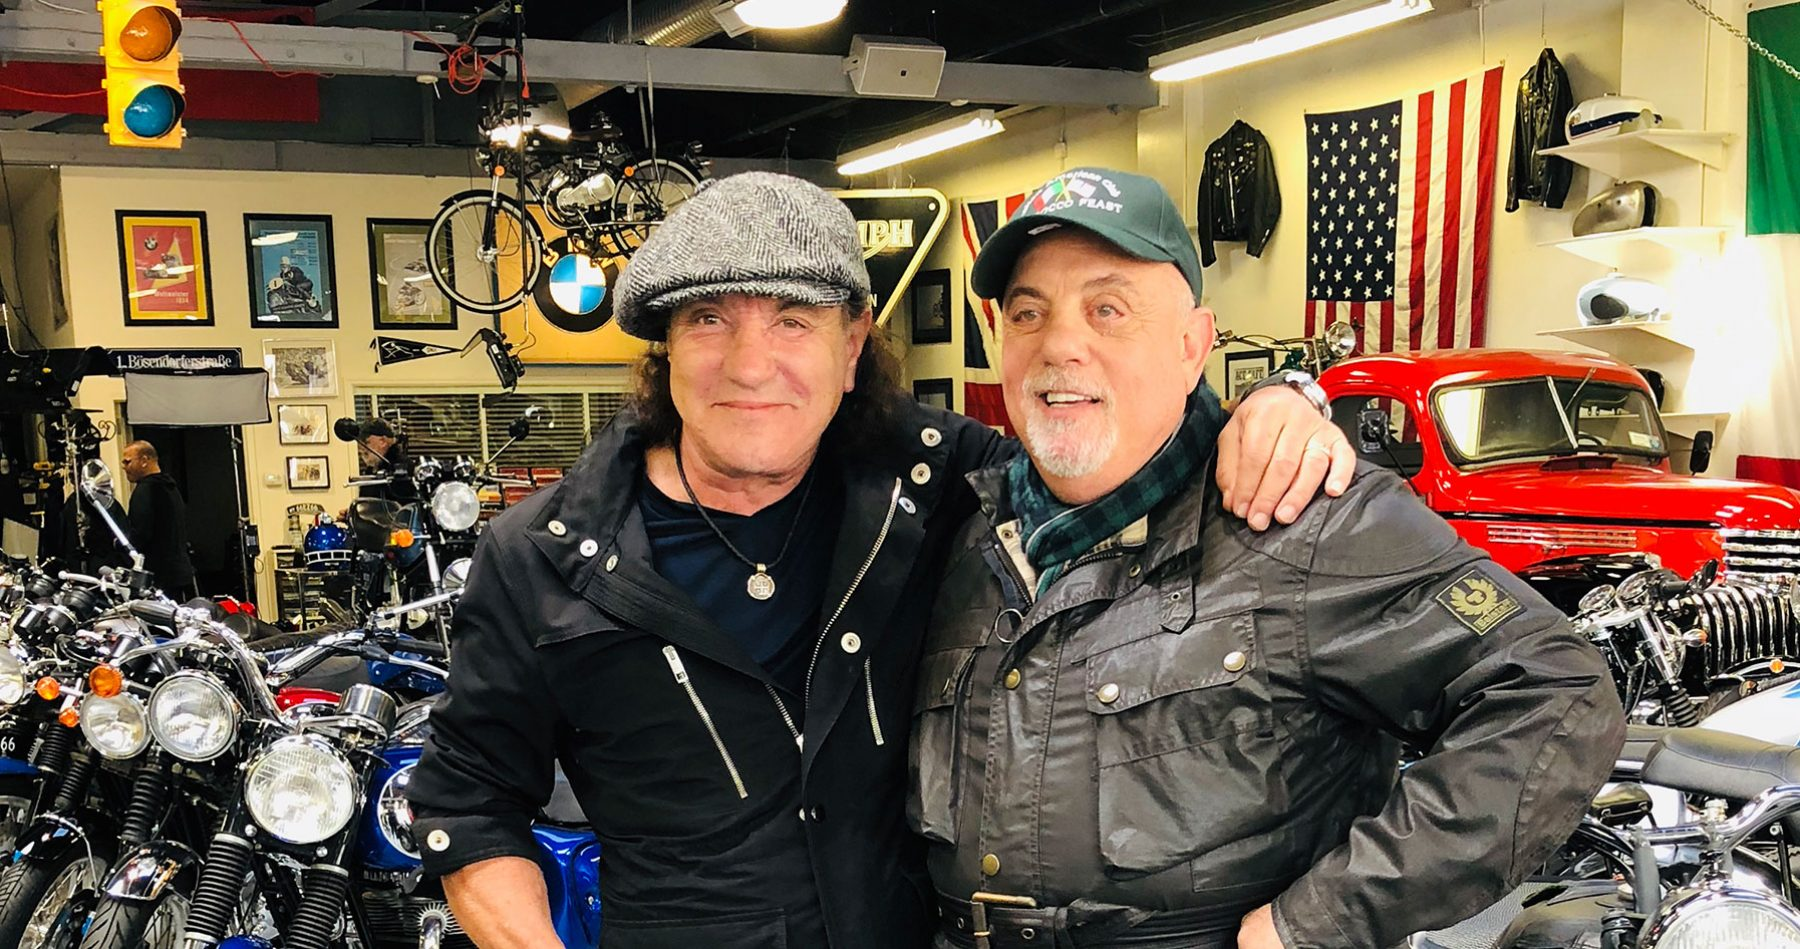 Billy Joel and Brian Johnson at 20th Century Cycles